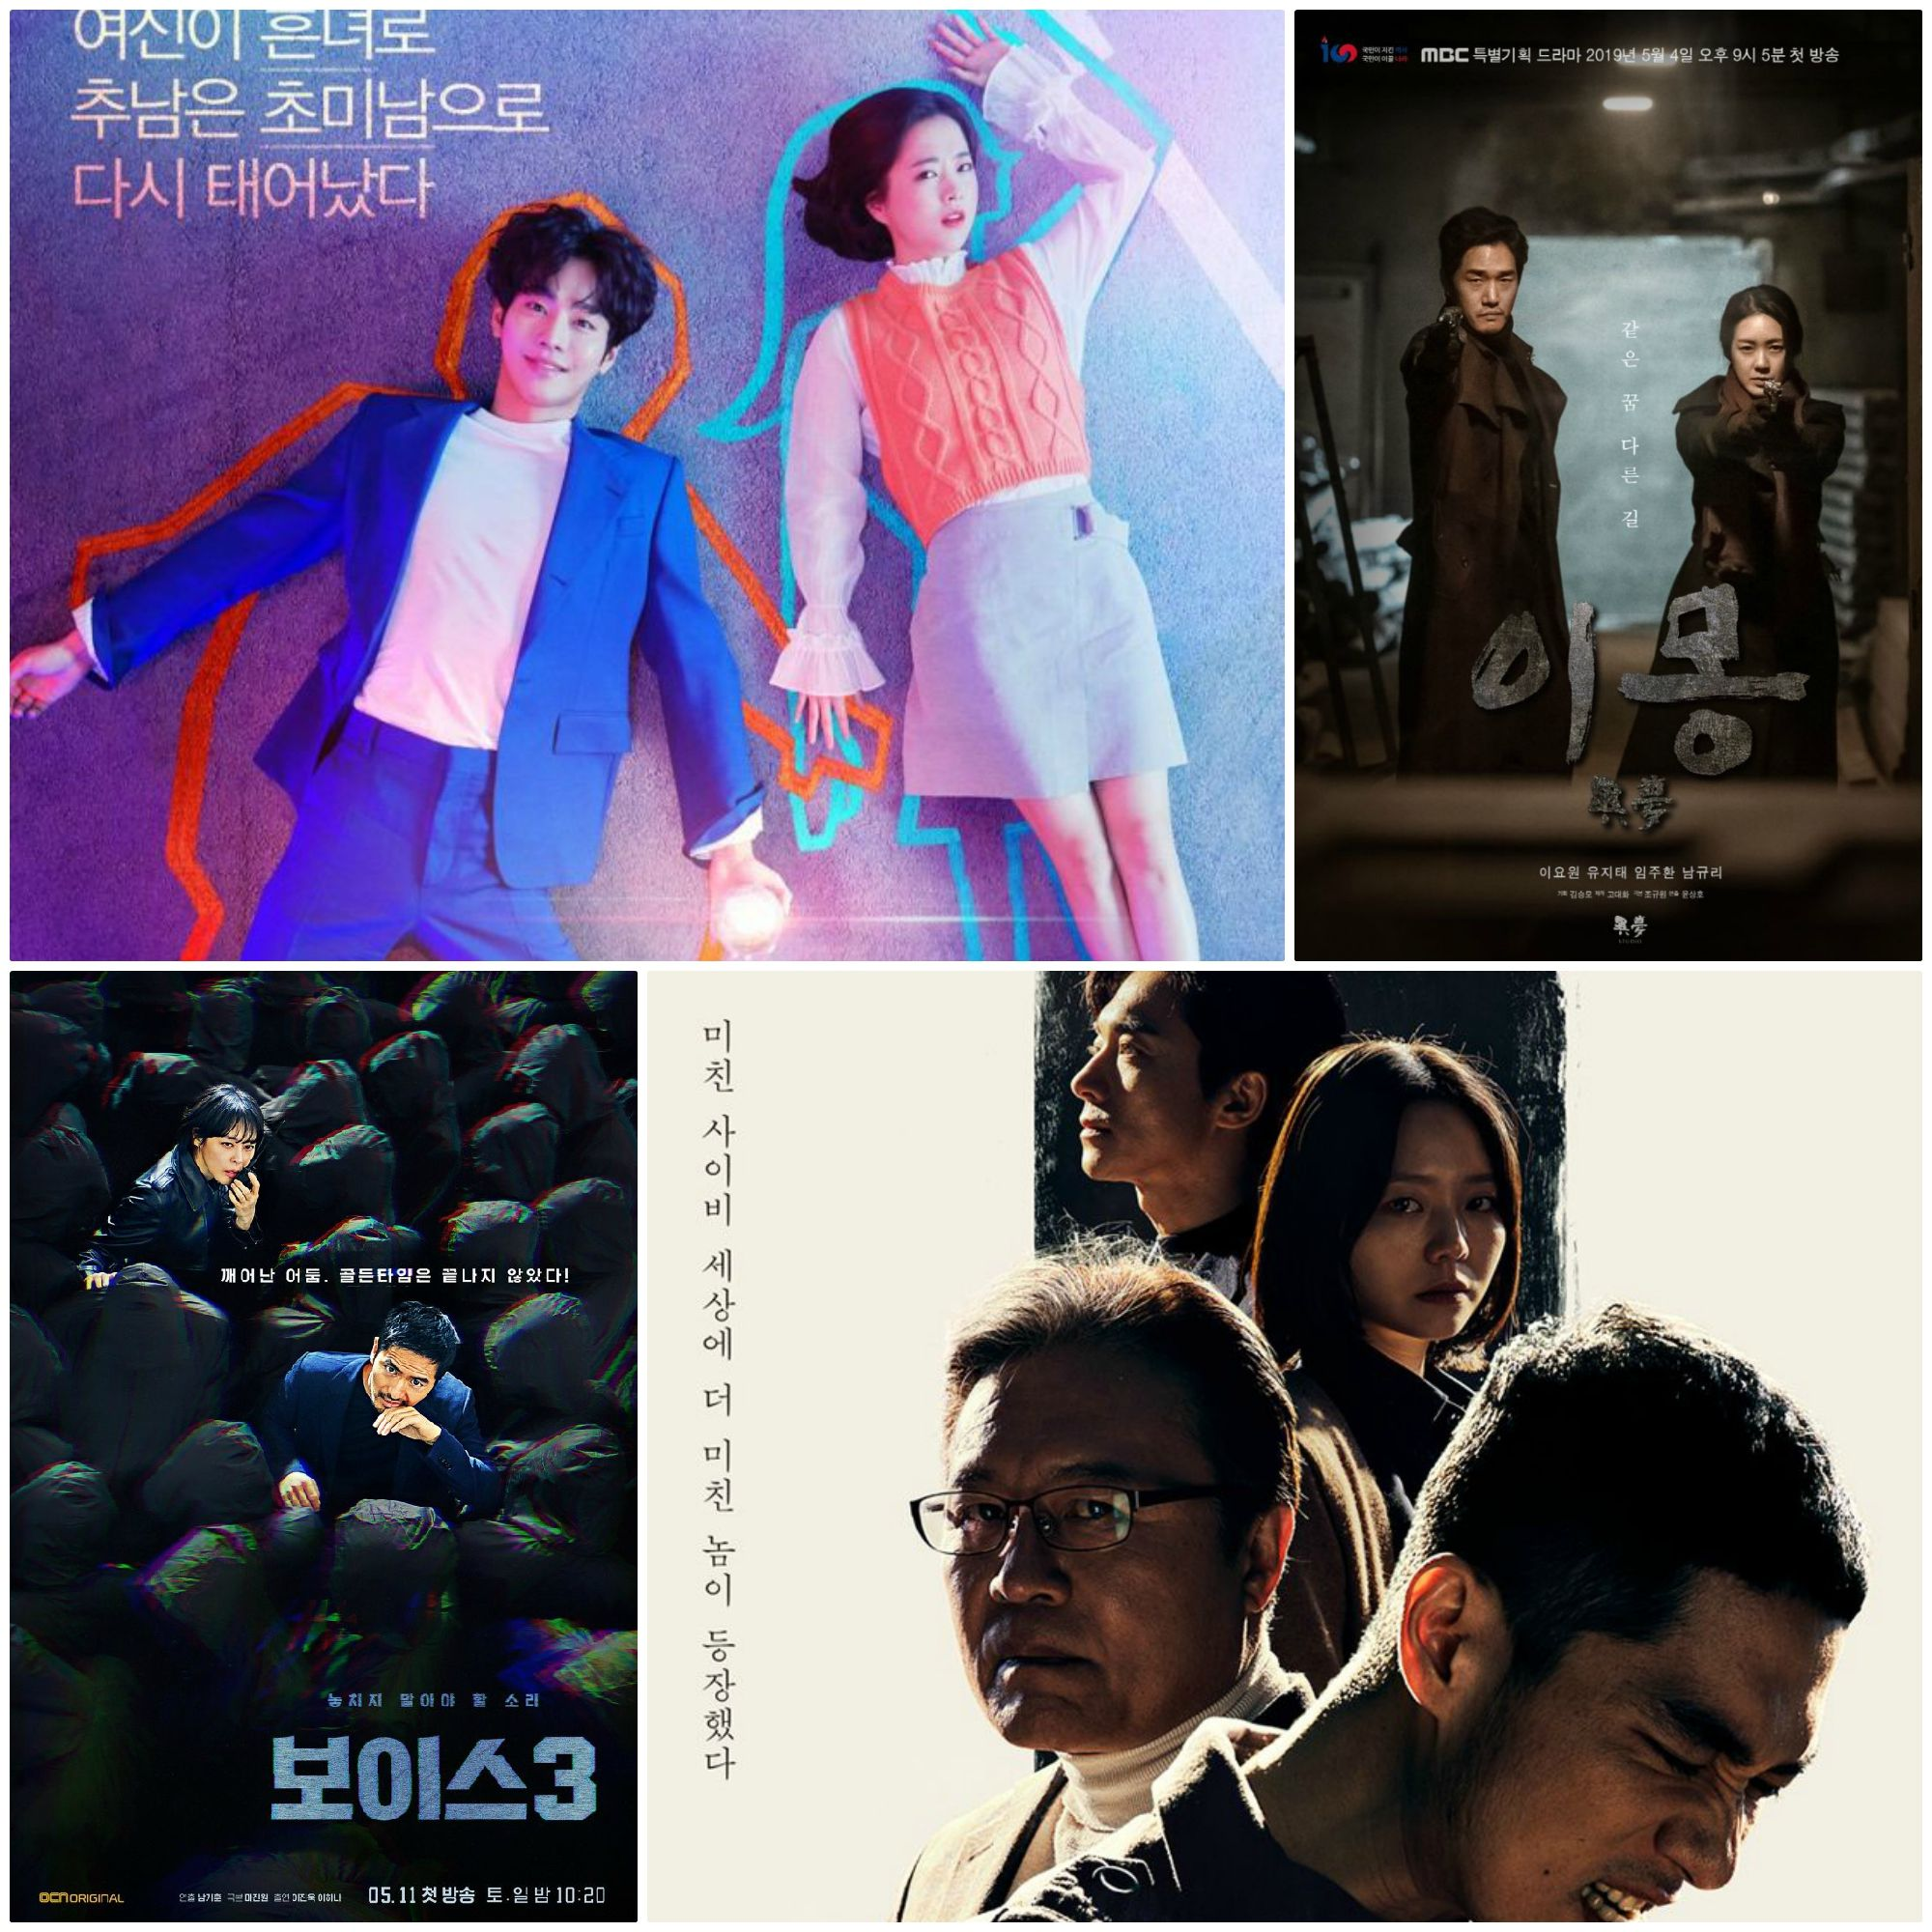 10 K-Dramas will broadcast in this May (part 1)